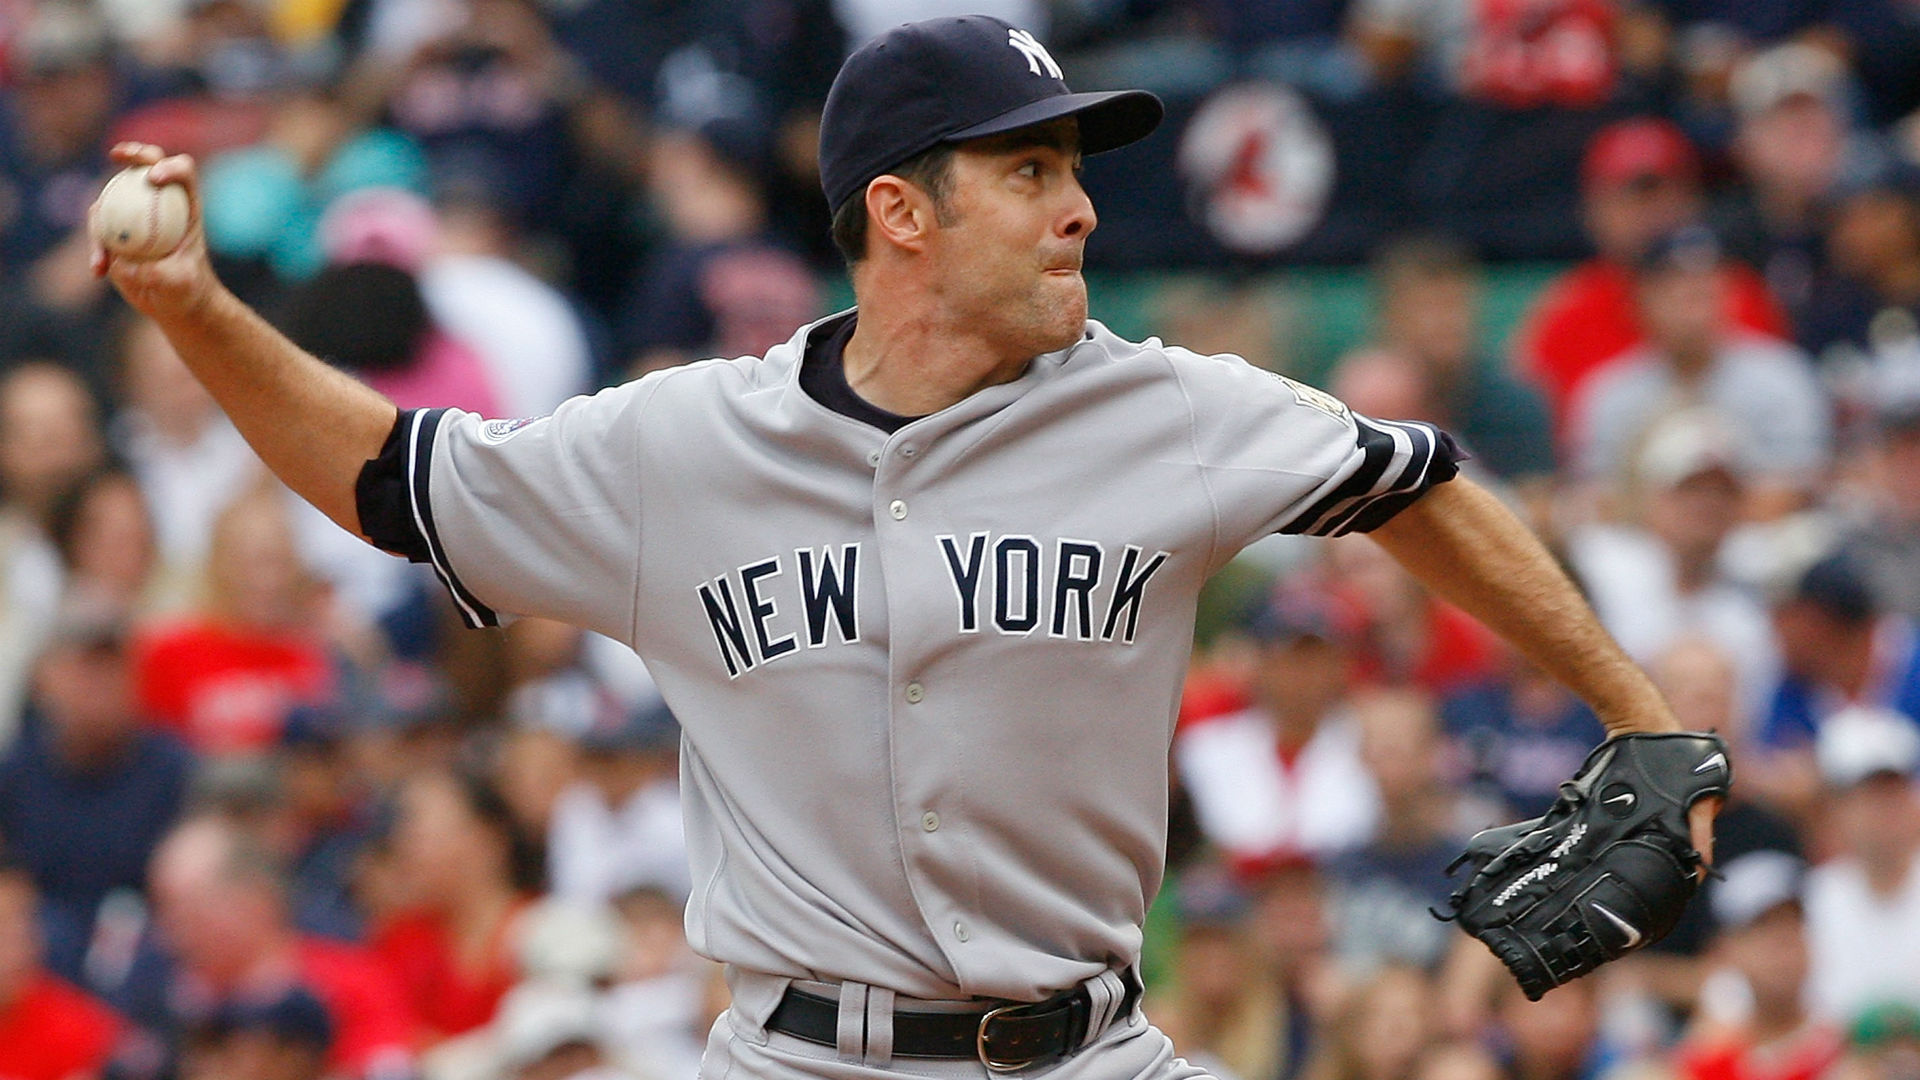 Mussina S Number Heavy Hall Of Fame Argument Does Not Add Up